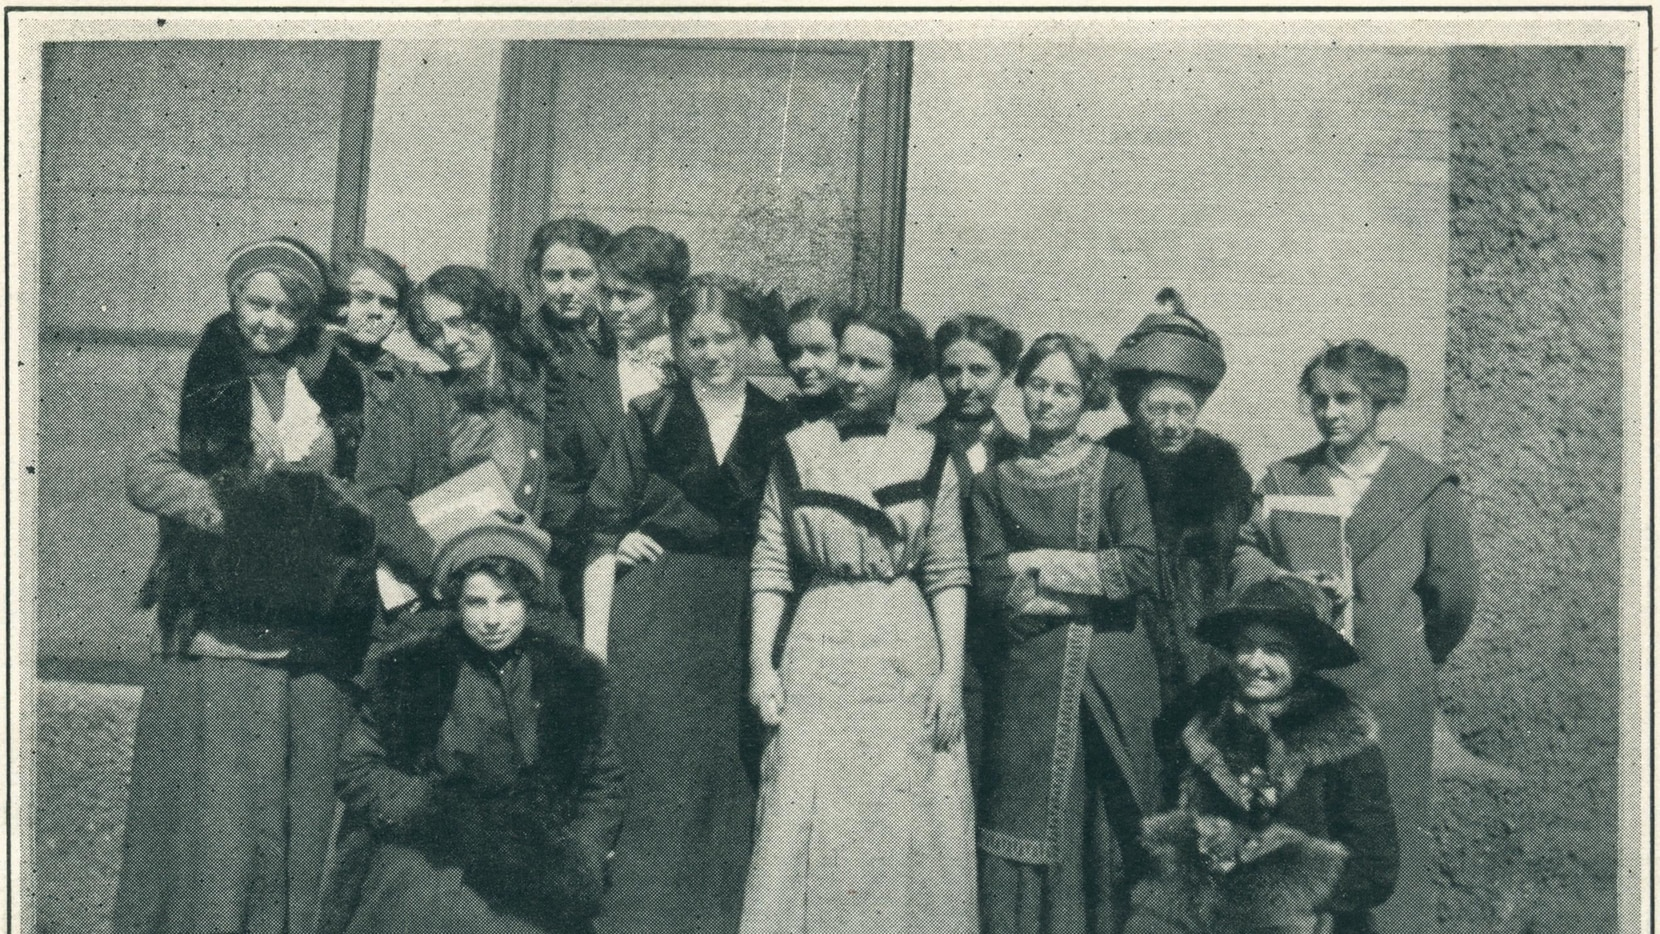 Members of the Equal Suffrage League are seen in a photo from a 1912 yearbook for West Texas State Normal College, now known as West Texas A&M University. That year, the League sponsored an on-campus debate between female students that was interrupted by young men who thought suffrage would lead to children being neglected.